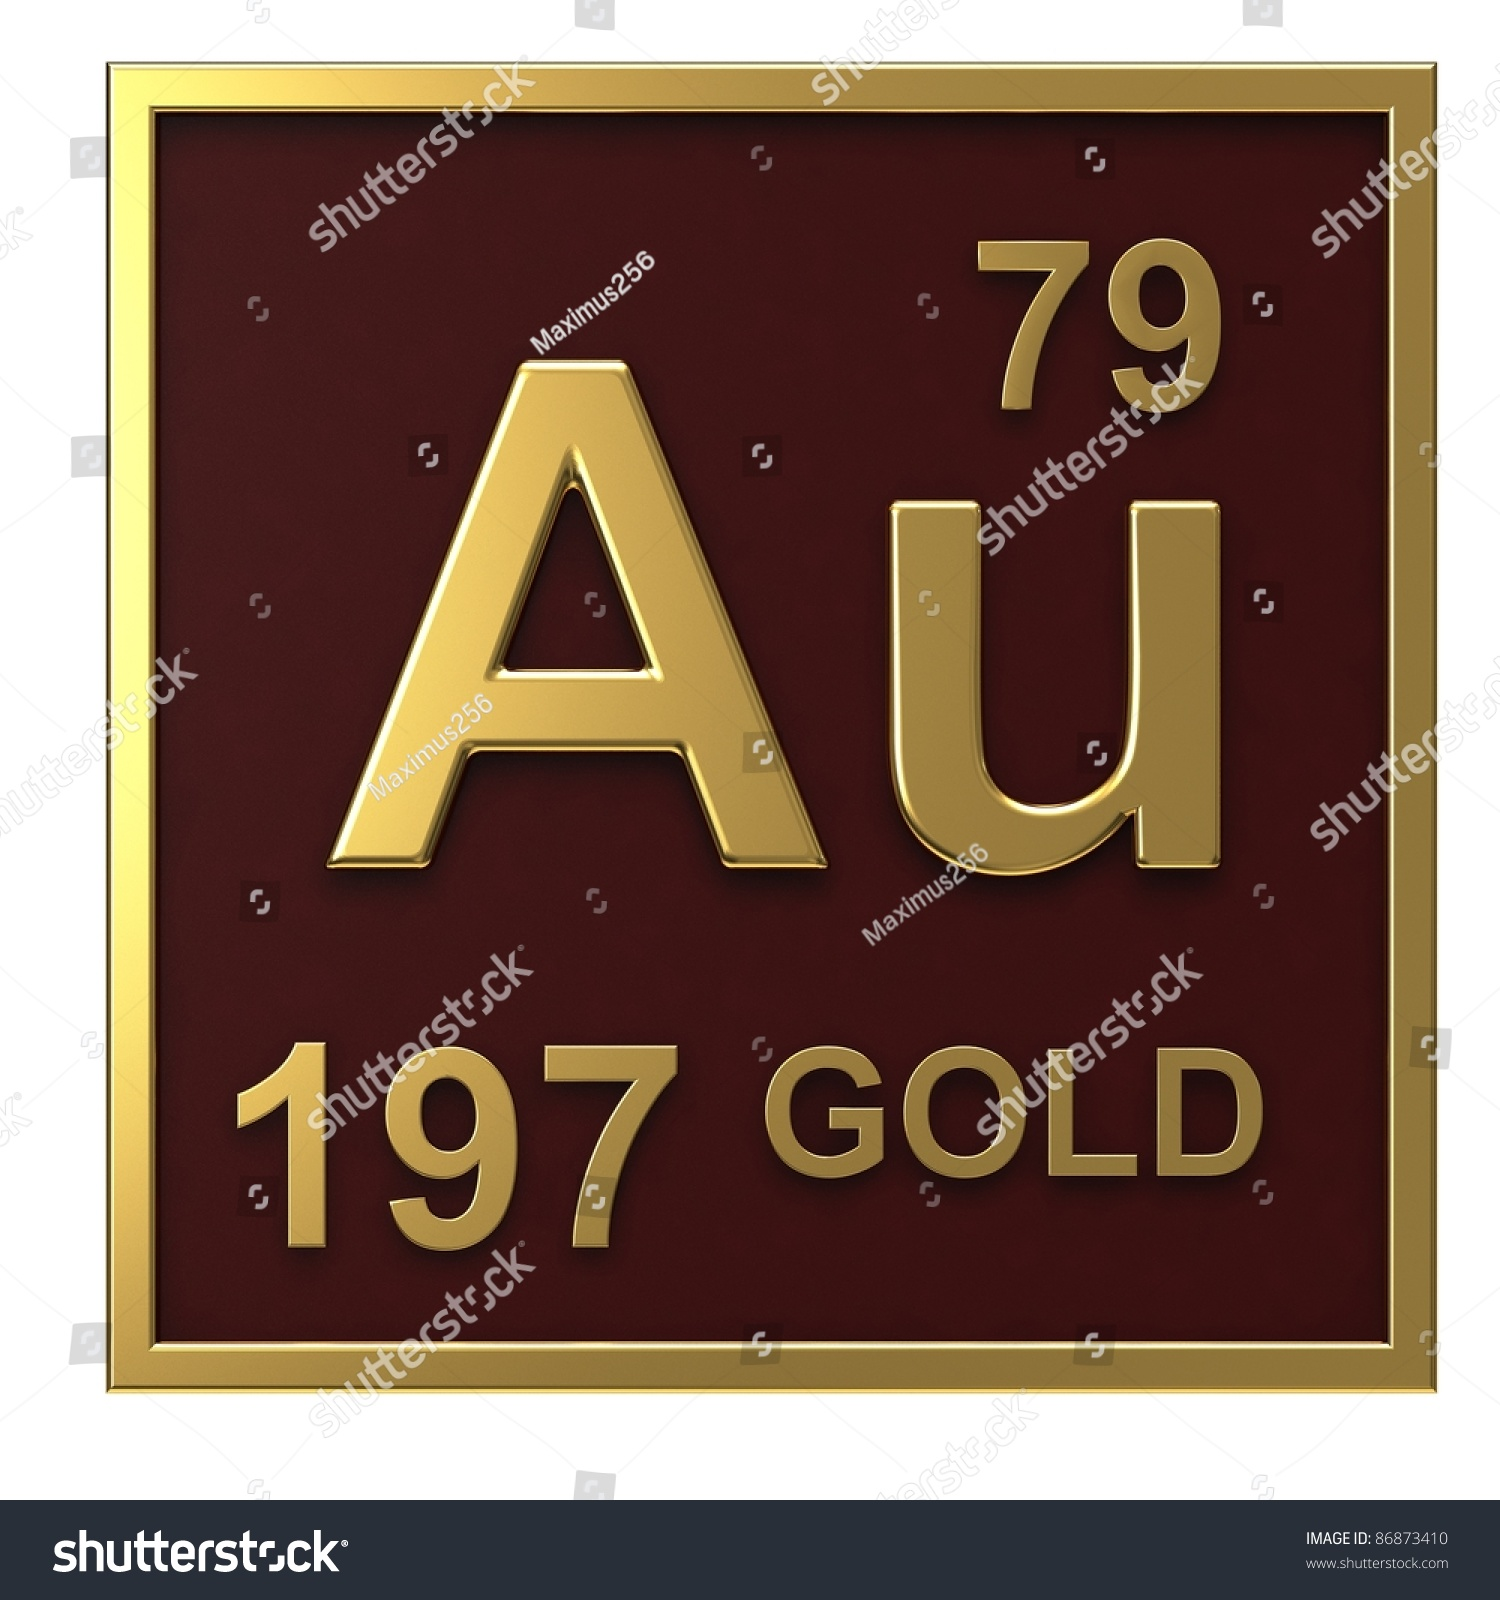 Element periodic table gold isolated on stock illustration element of the periodic table gold isolated on white background gamestrikefo Image collections